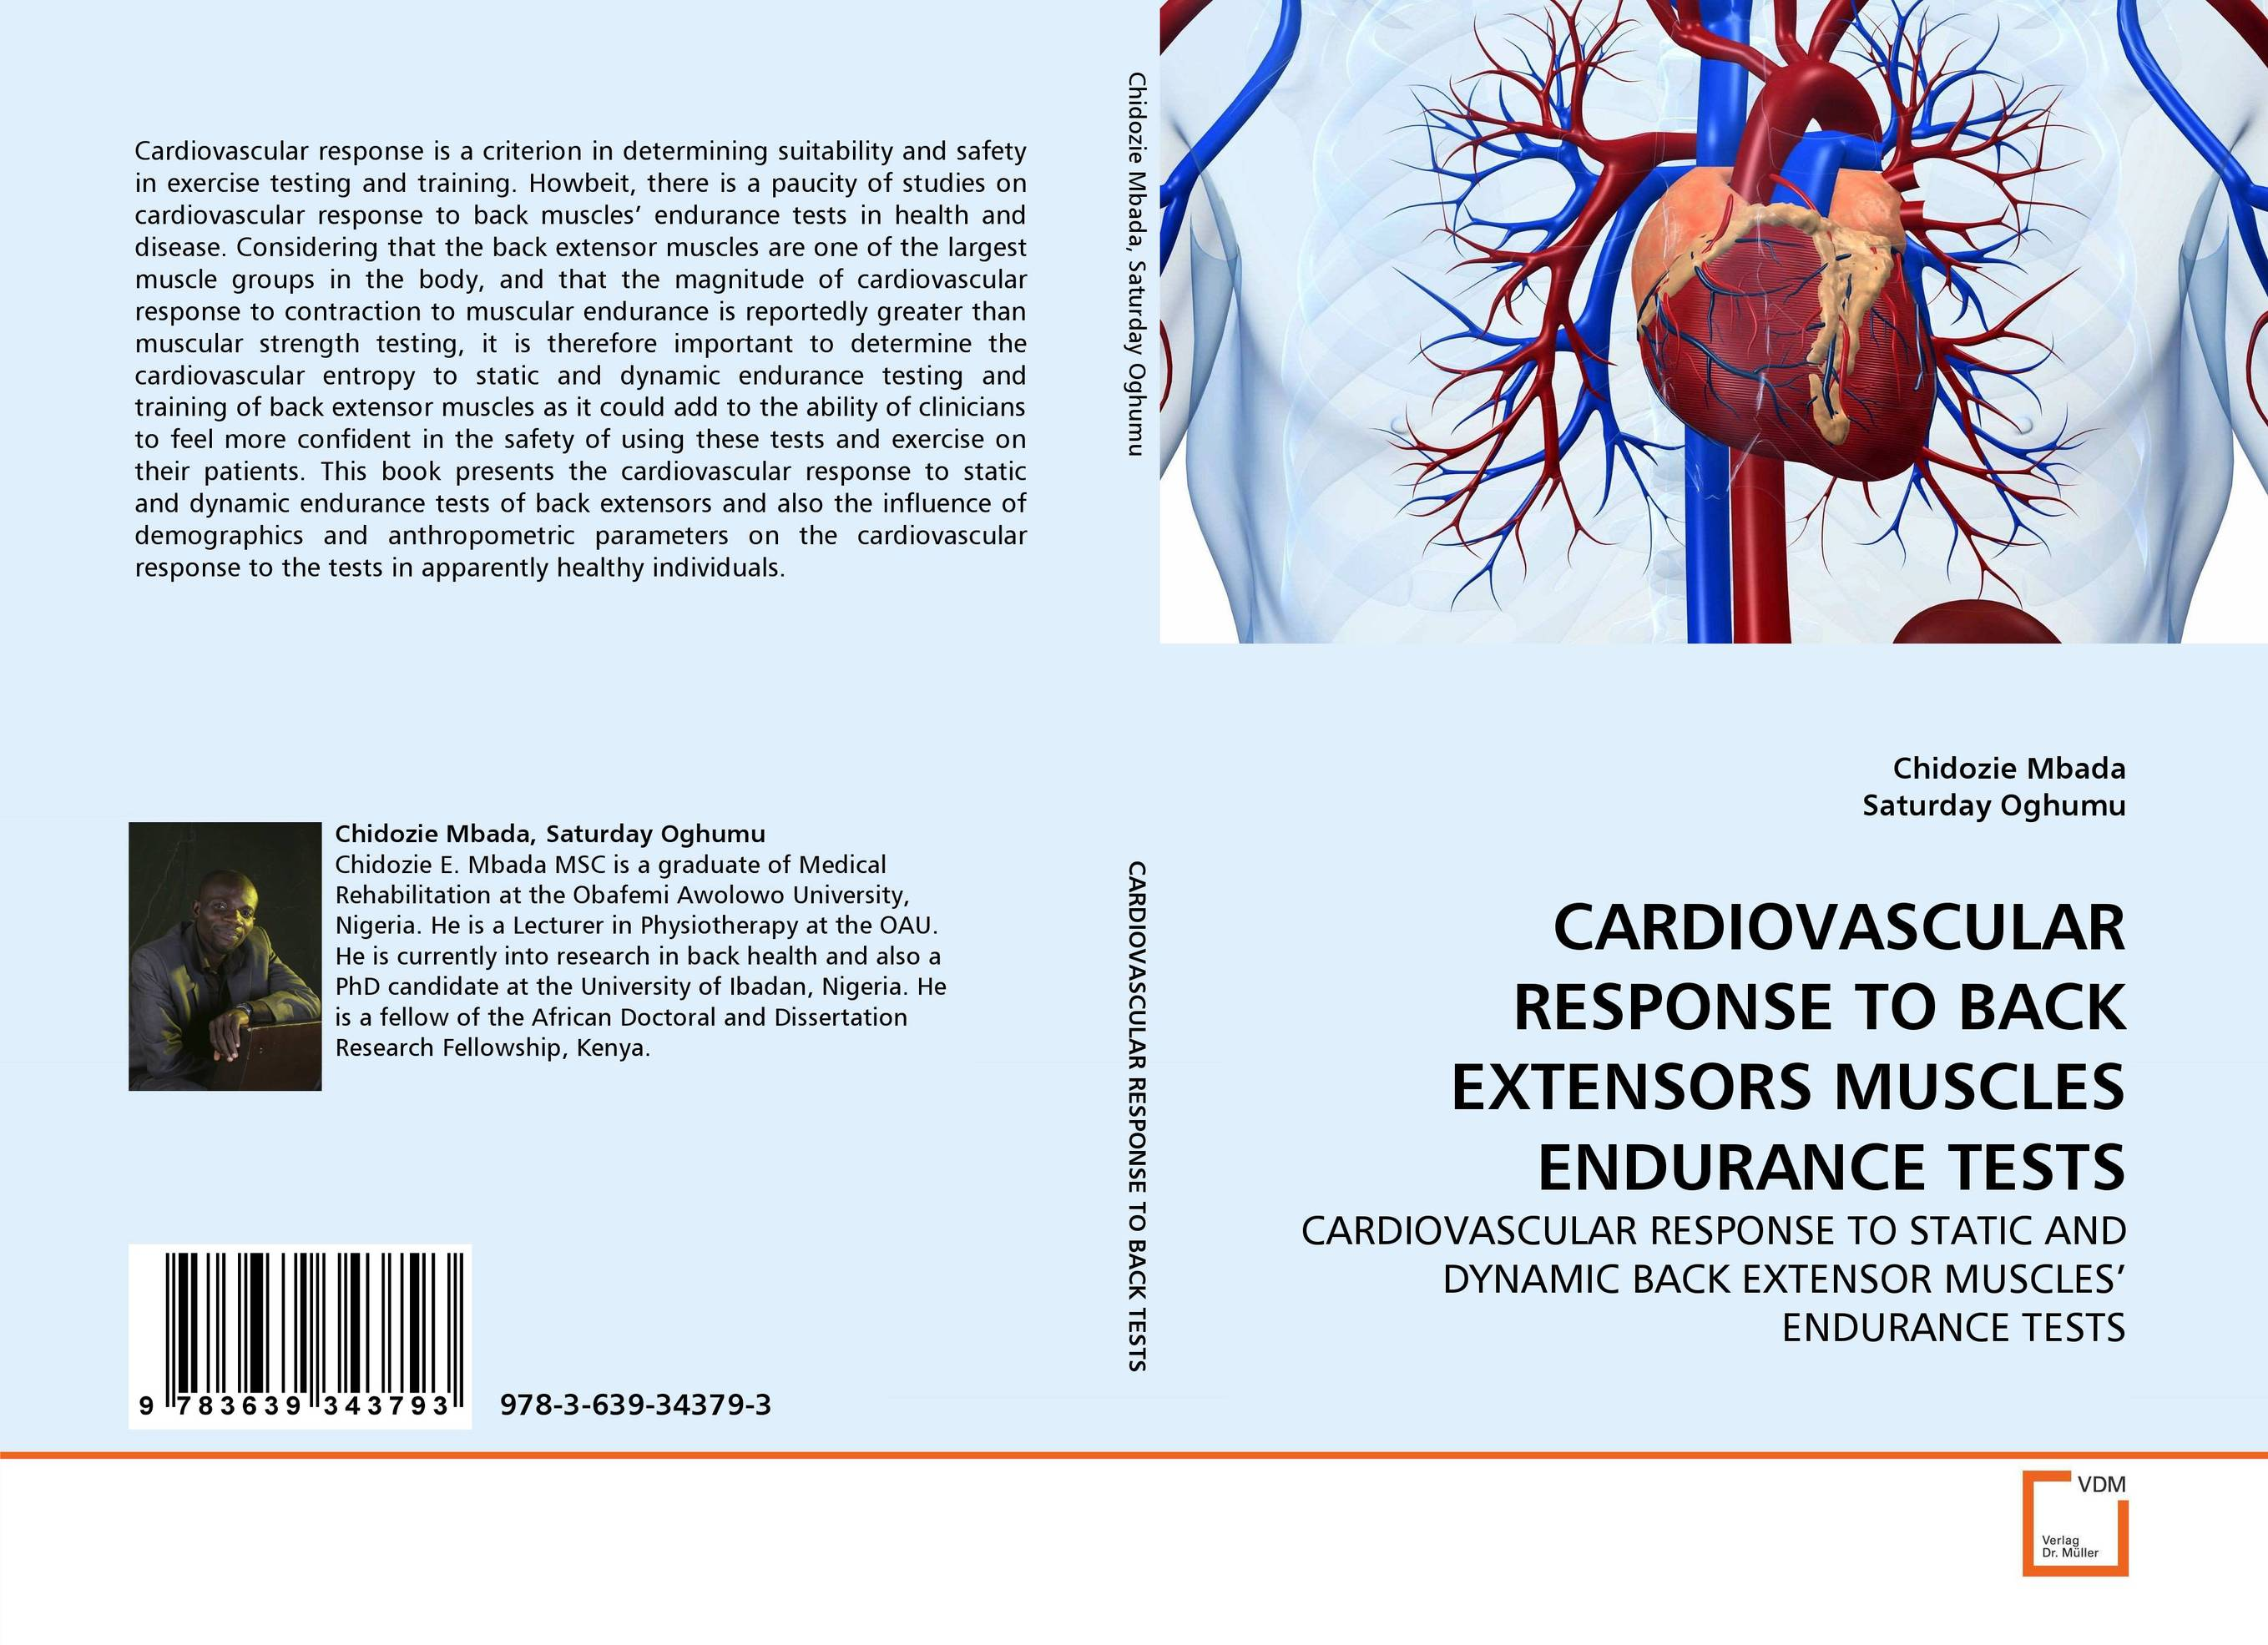 CARDIOVASCULAR RESPONSE TO BACK EXTENSORS MUSCLES ENDURANCE TESTS cardiovascular changes and unconjugated hyperbilirubinemia in neonates